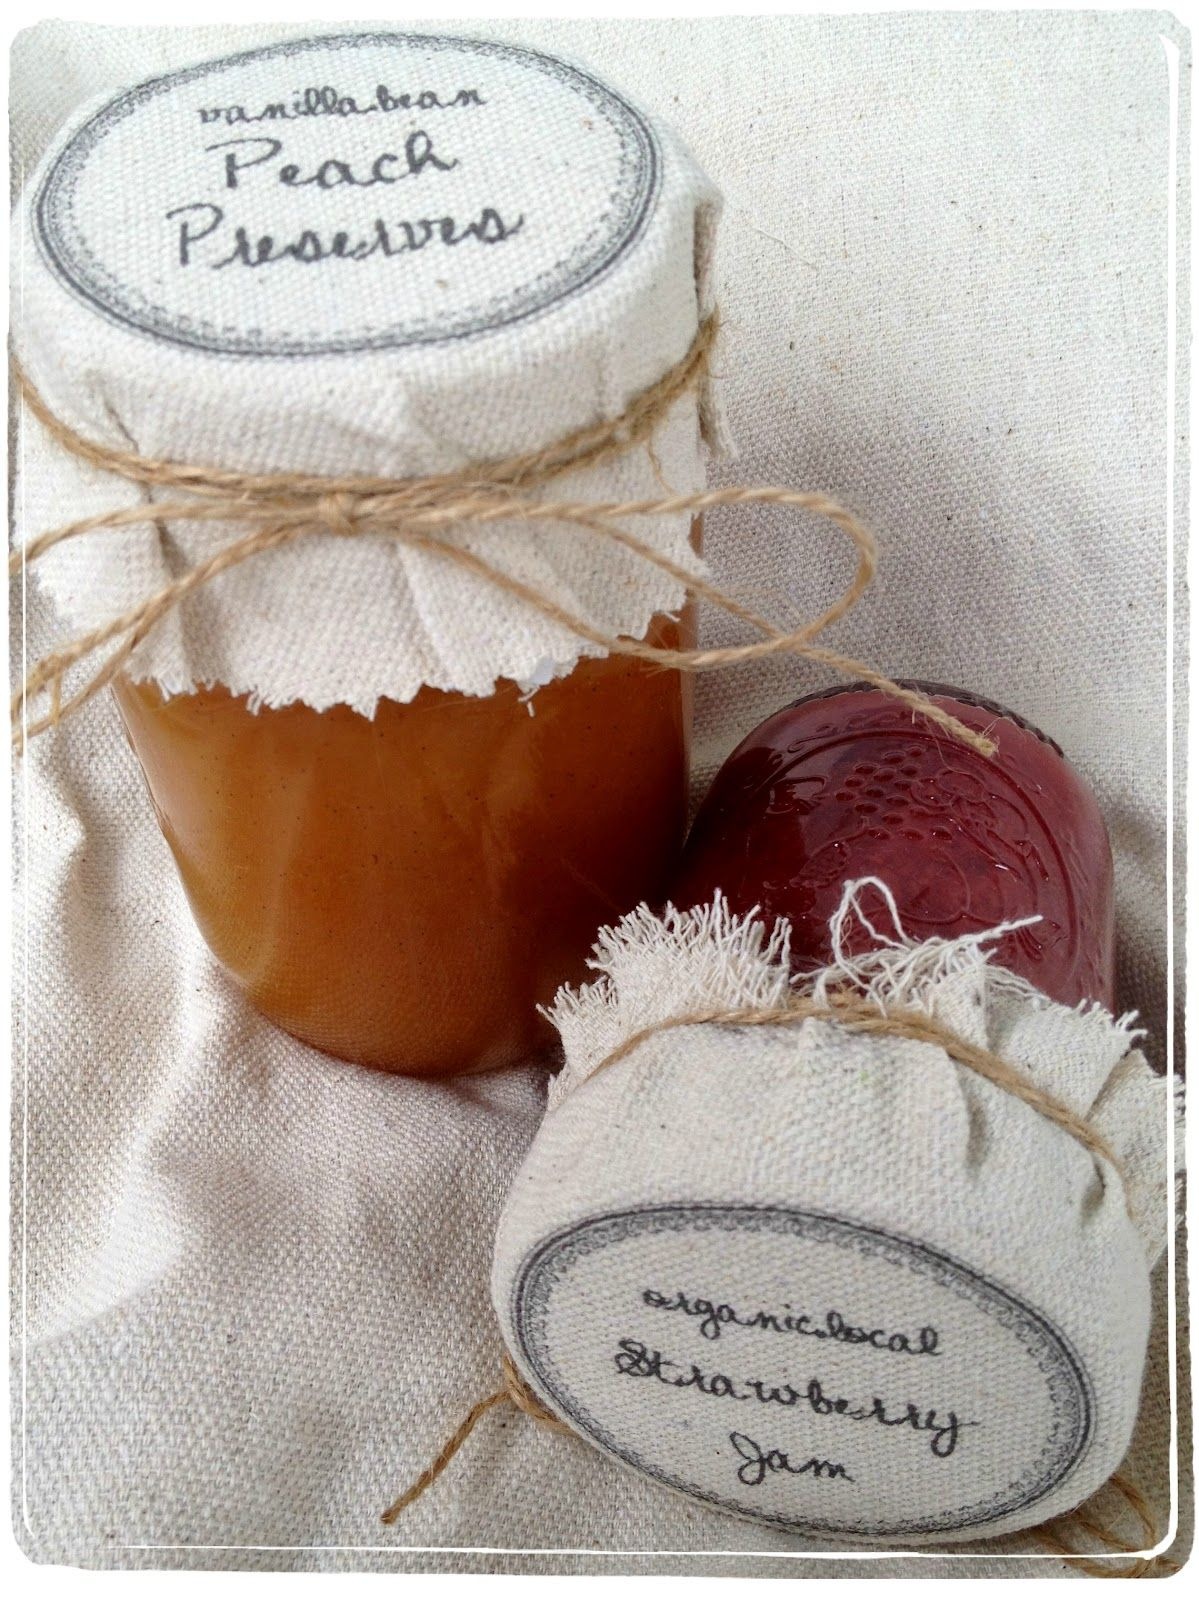 Personalized Fabric Mason Jar Label Tutorial using drop cloth, freezer paper and your home printer.